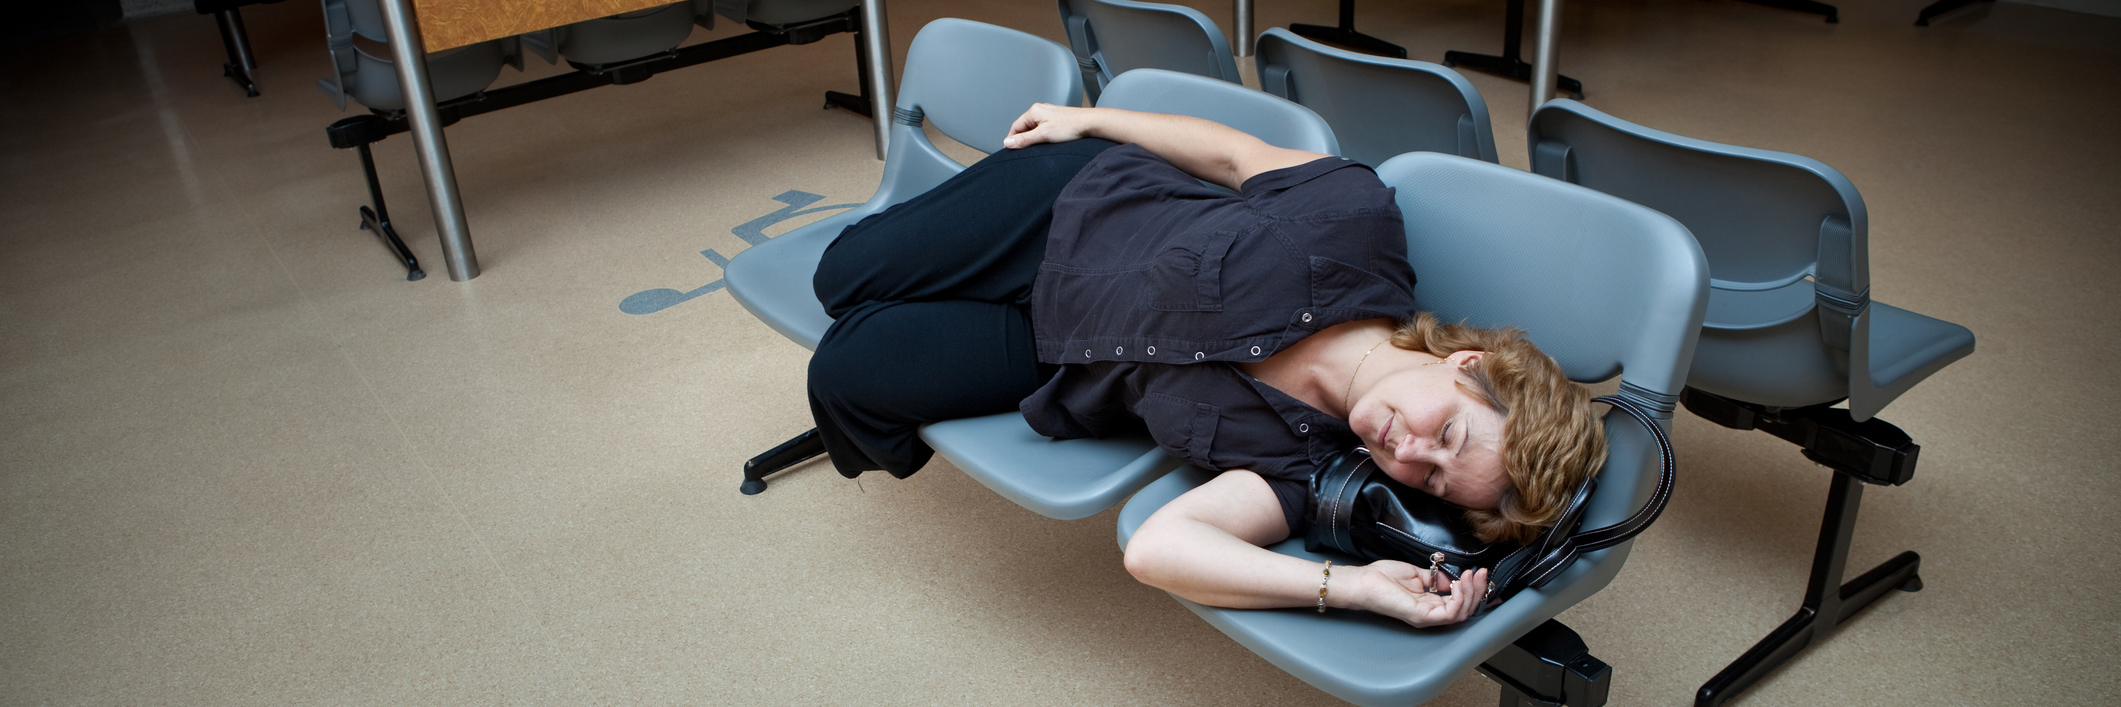 Woman laying on waiting room seats in the hospital.